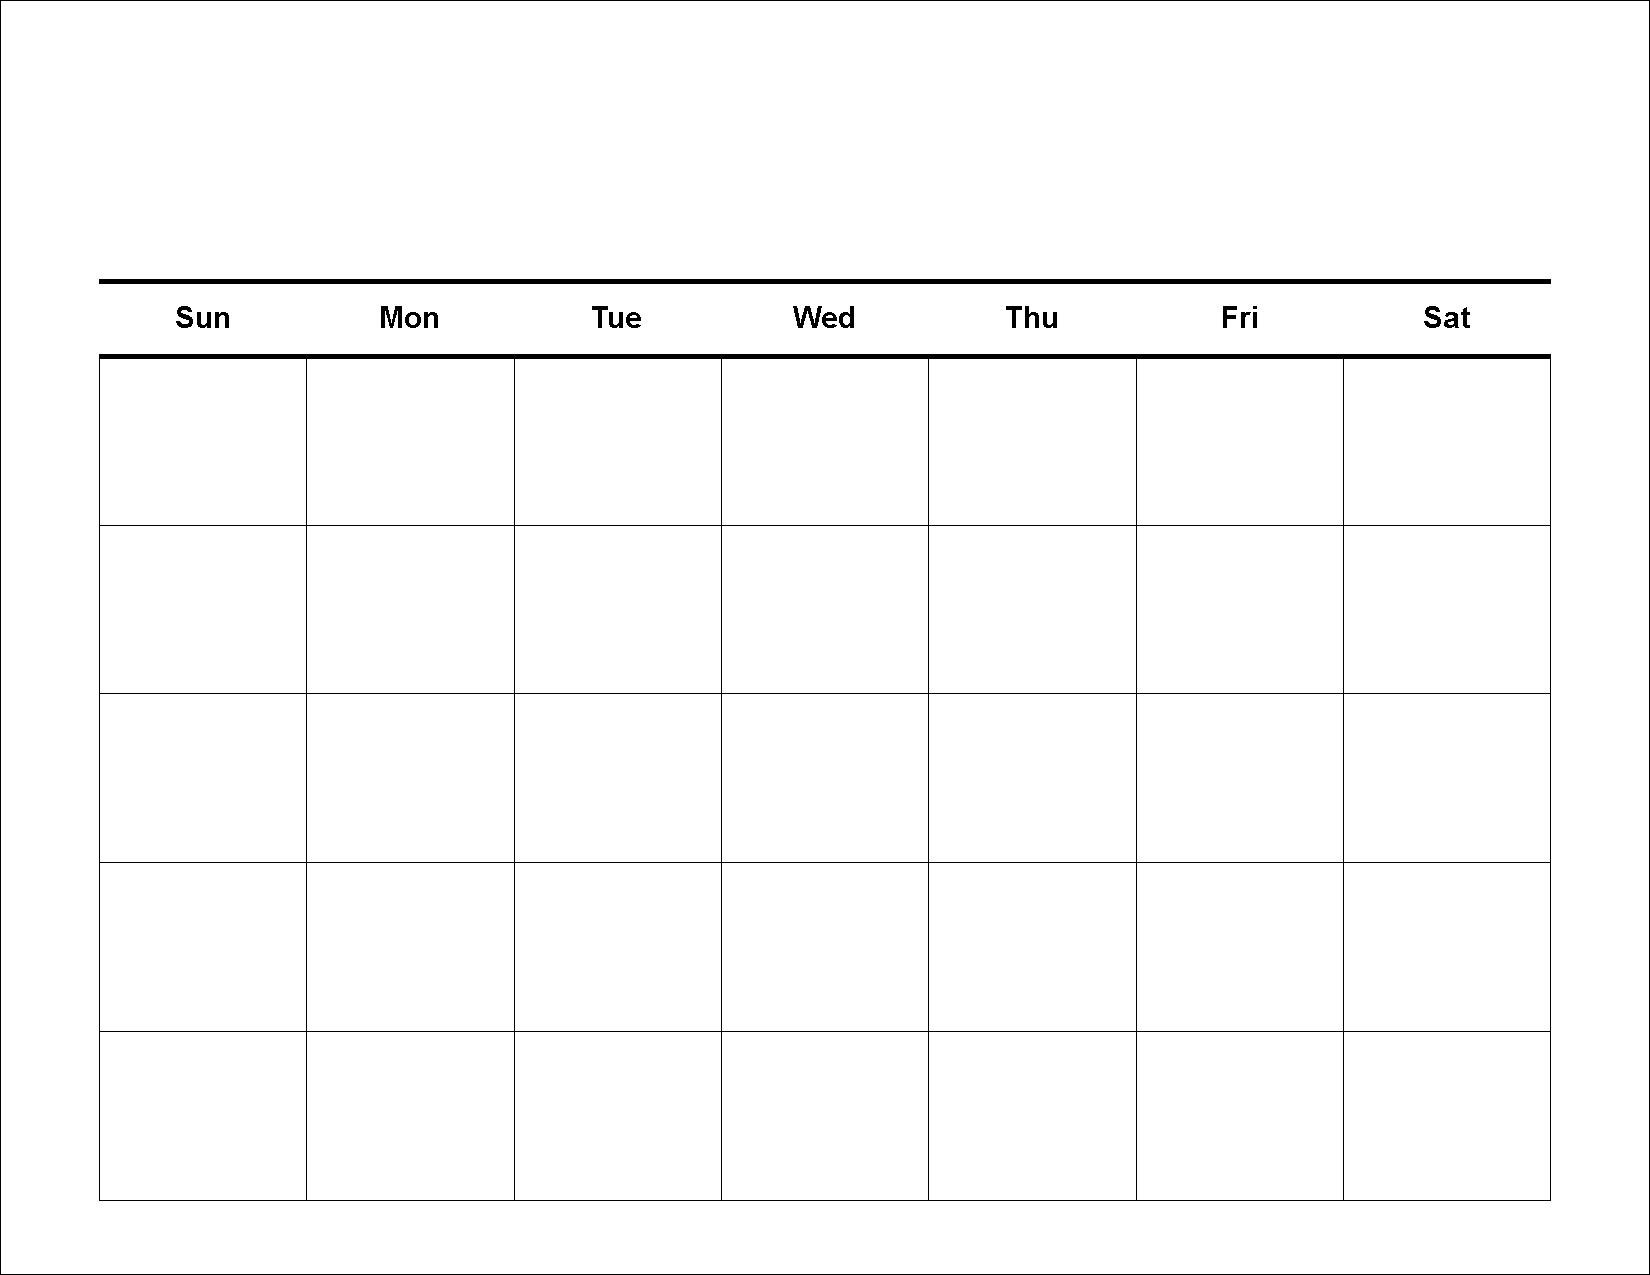 30-Day-Calendar-Template-Printable-Large with regard to Blank Printable Calendar Free